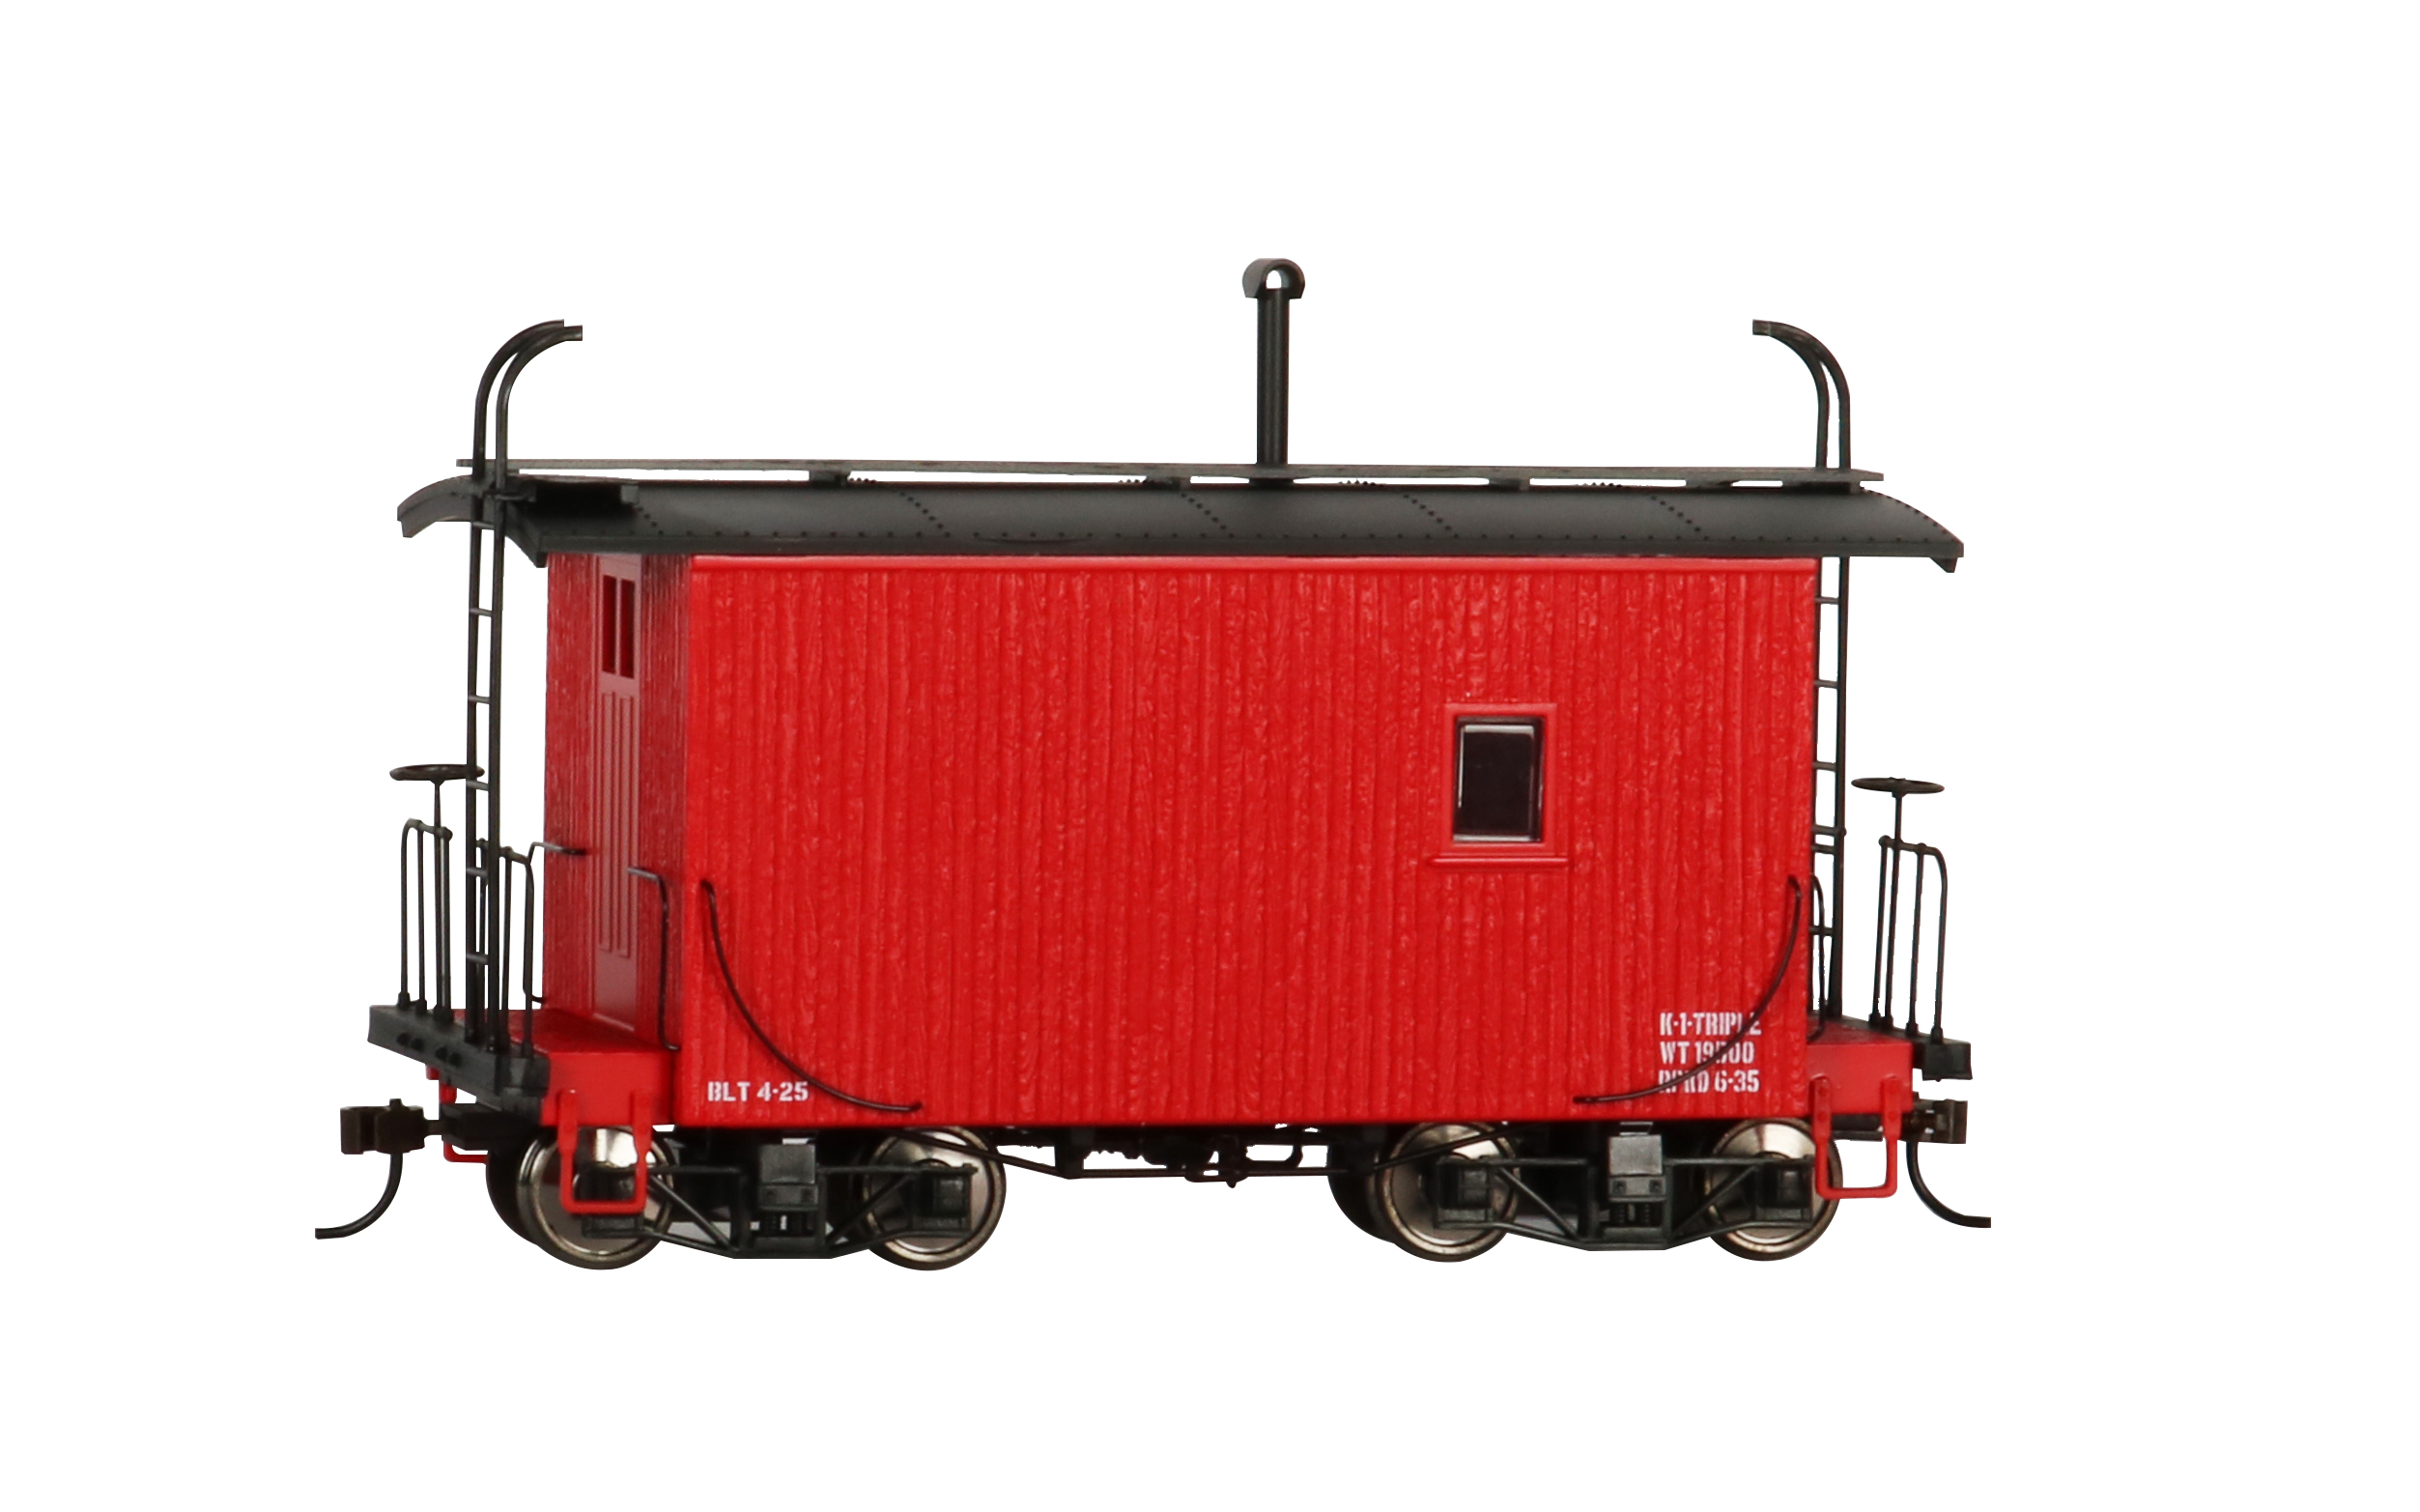 18 ft. Logging Caboose - Caboose Red, Data Only (On30)